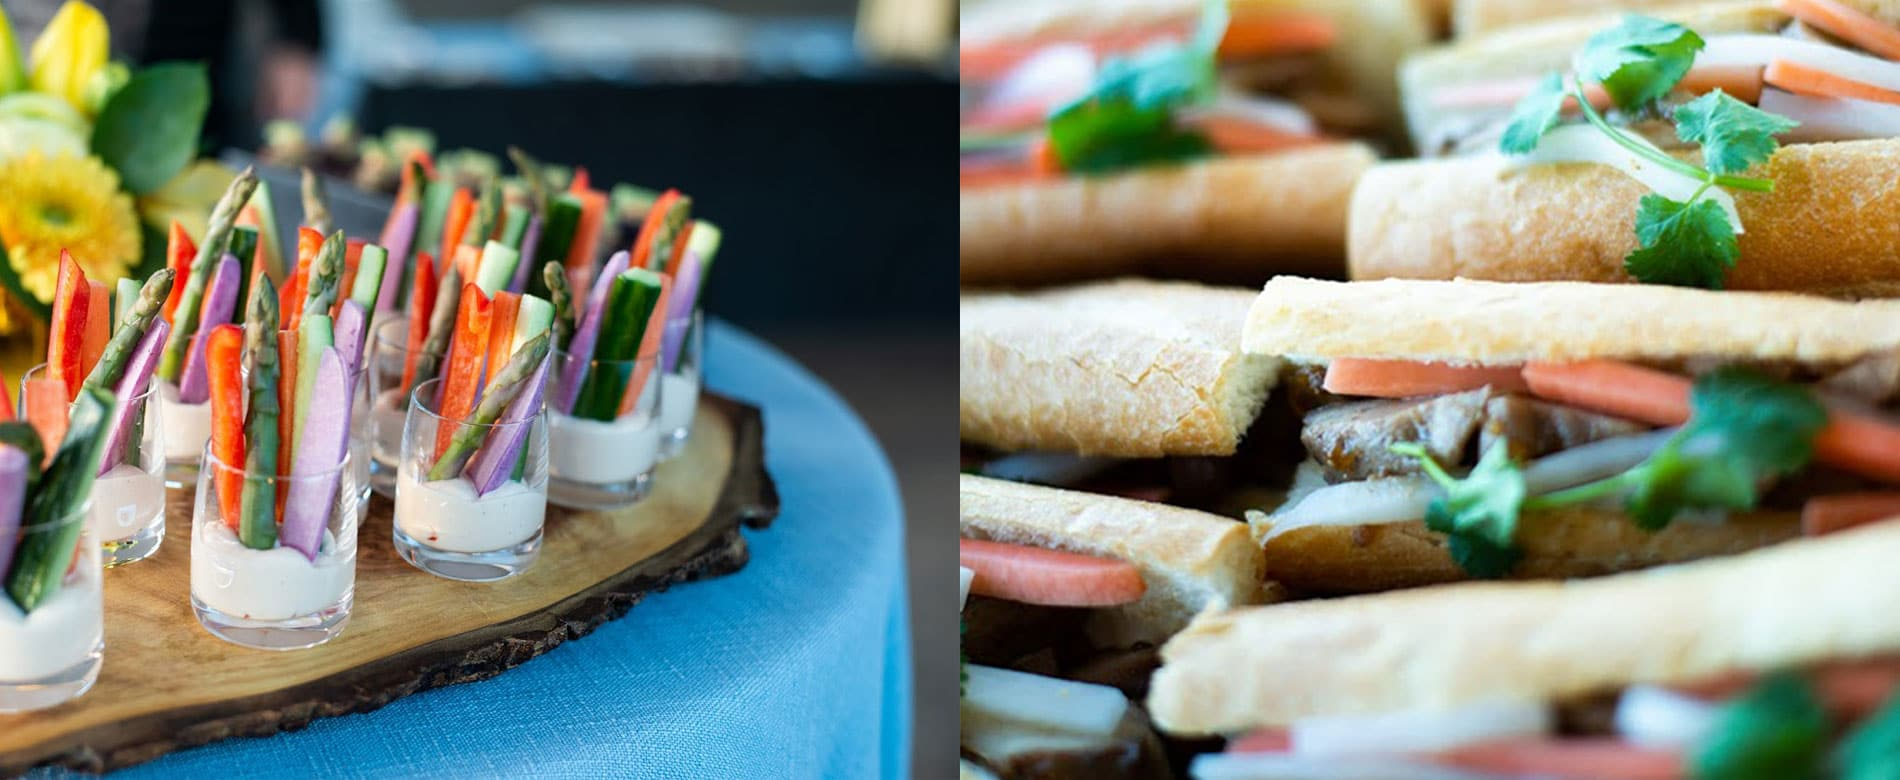 Wedding Catering Vancouver - Special Events and Corporate Catering Services